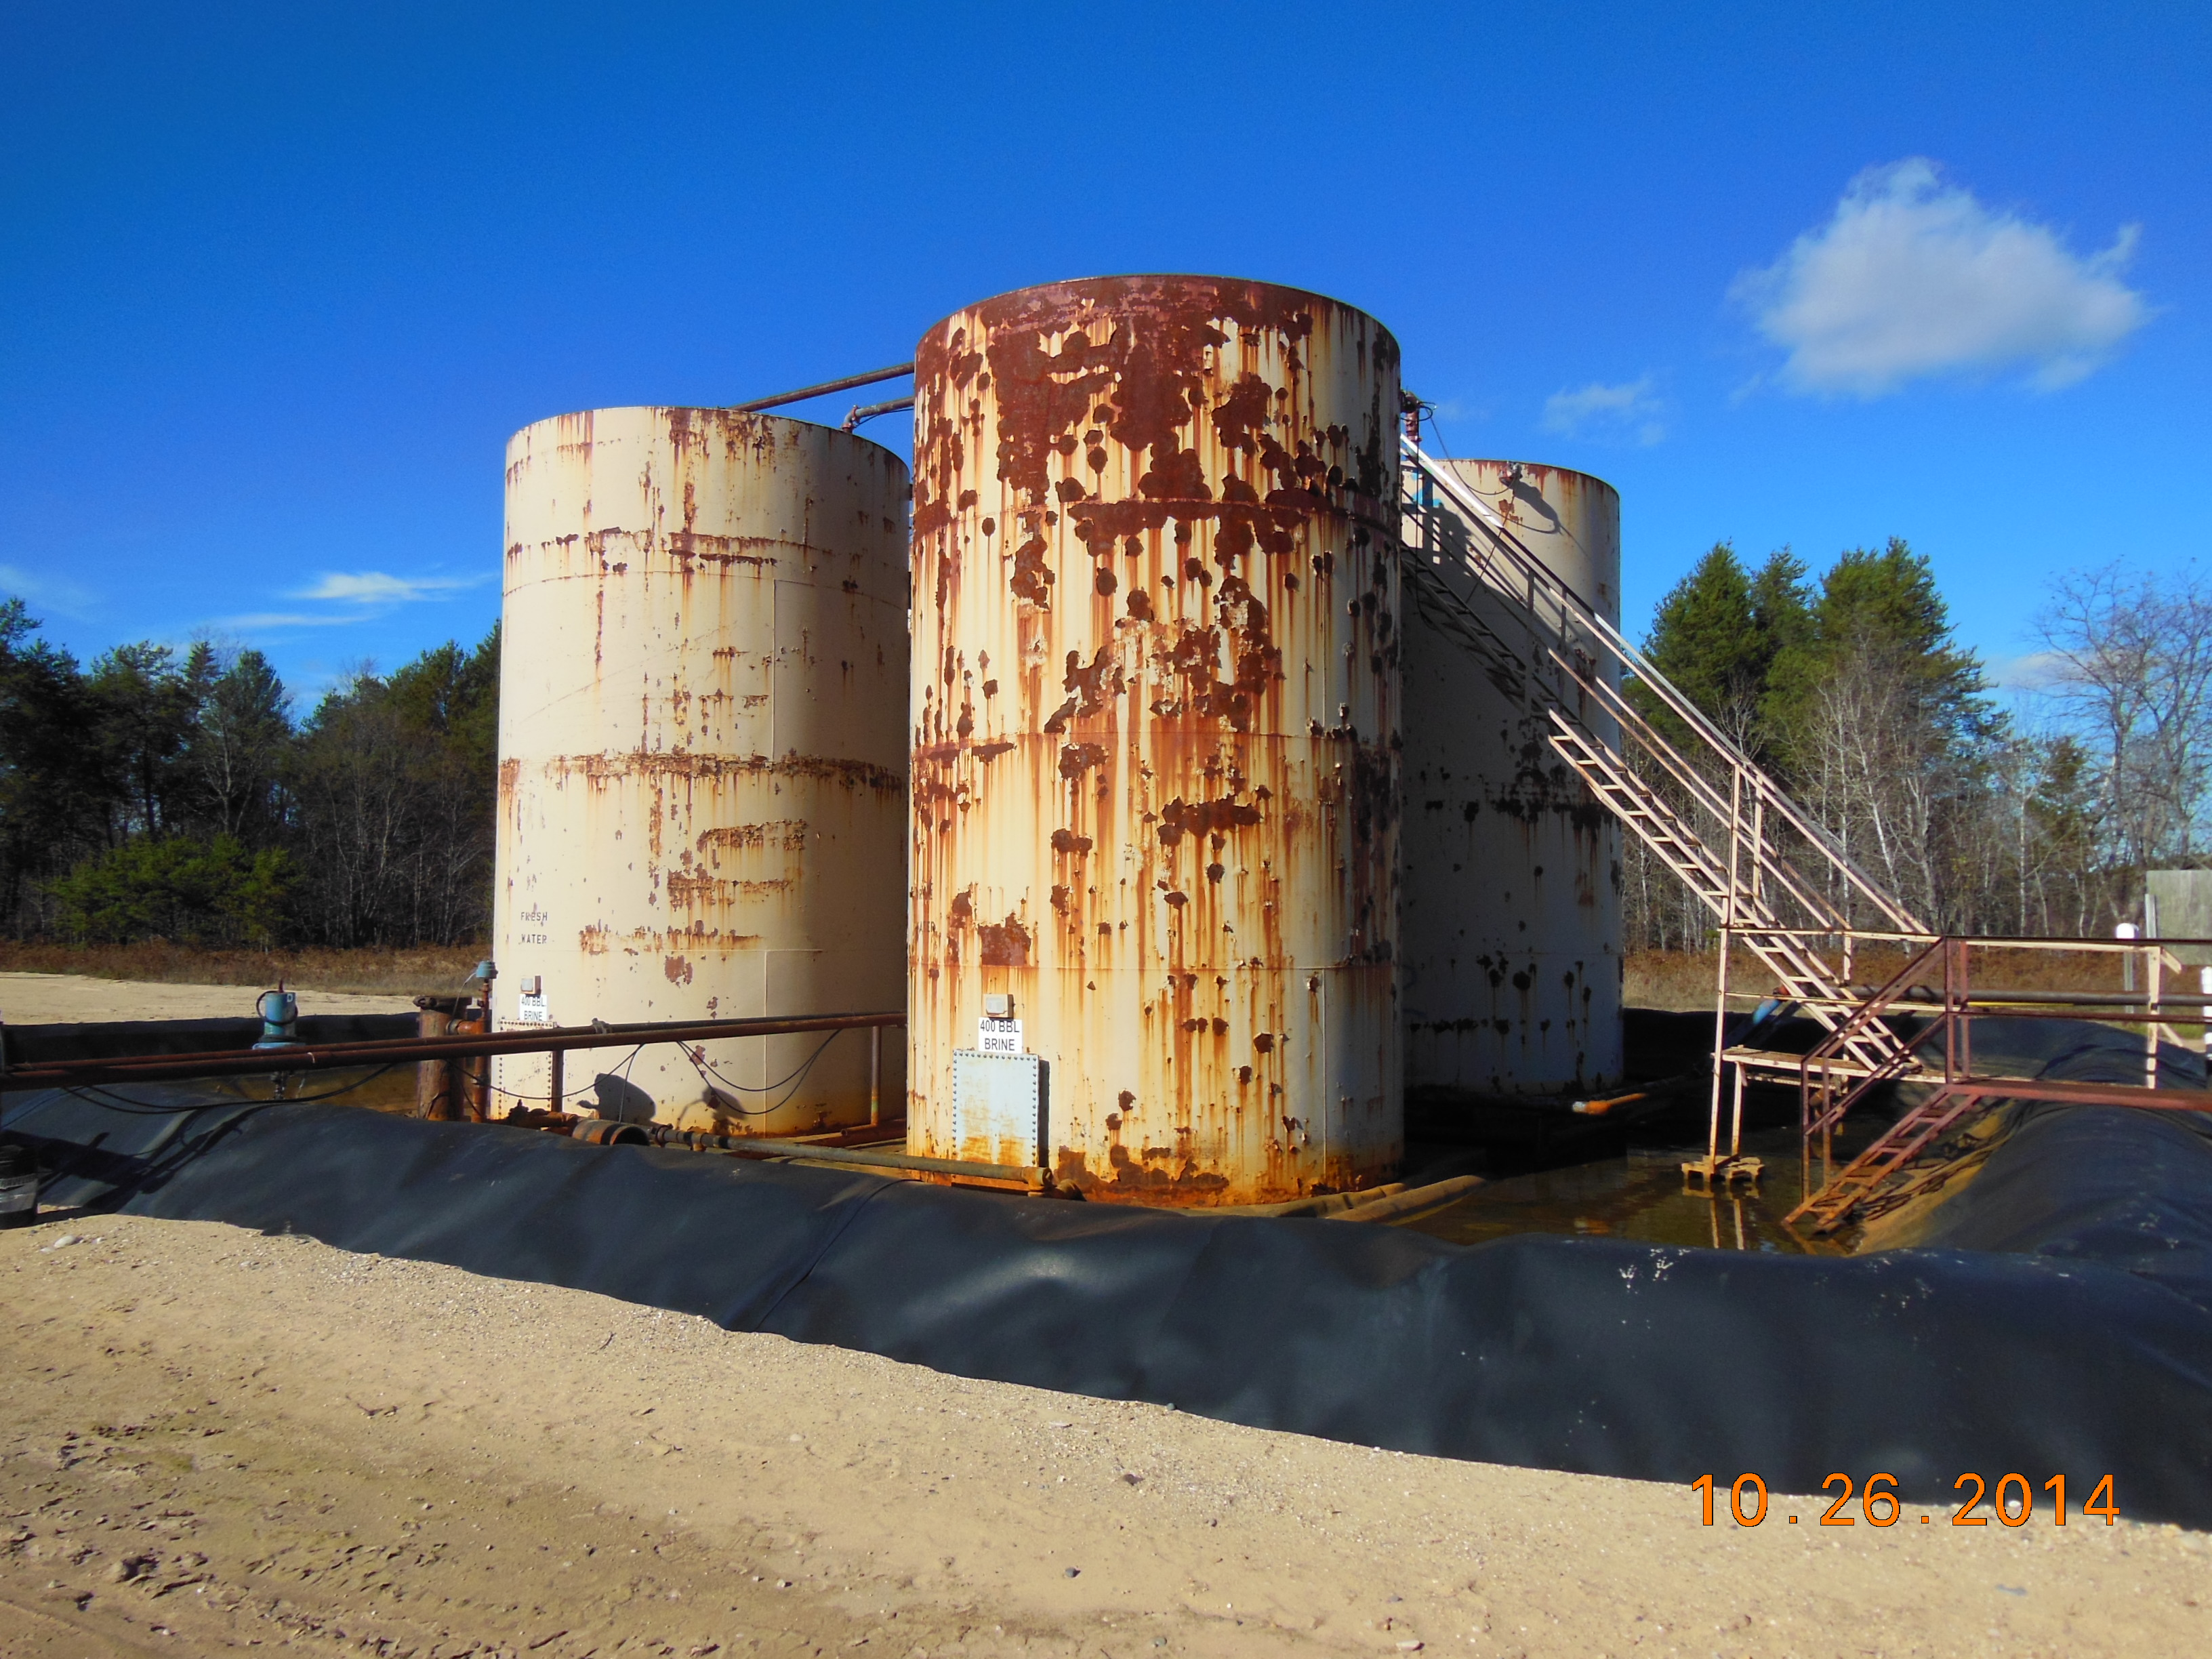 This is a tank battery at the State Frederic 1-6A well site. Did you know that the majority of groundwater contamination comes from hydrocarbon storage tanks of all types? Tanks fail and water gets contaminated.